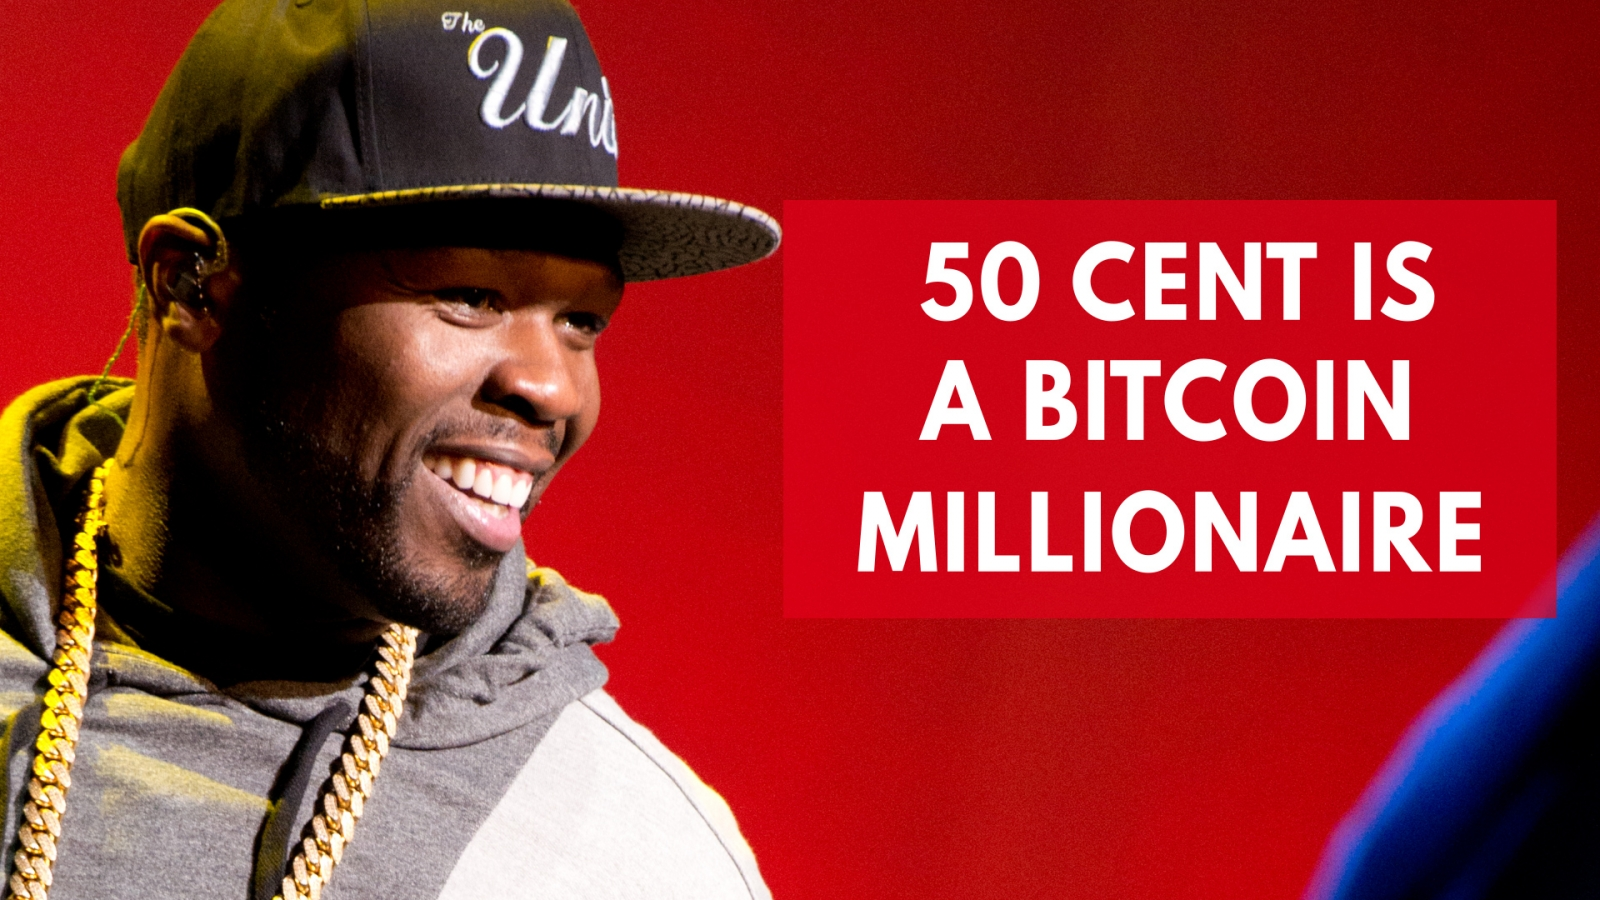 50 Cent is a Bitcoin millionaire